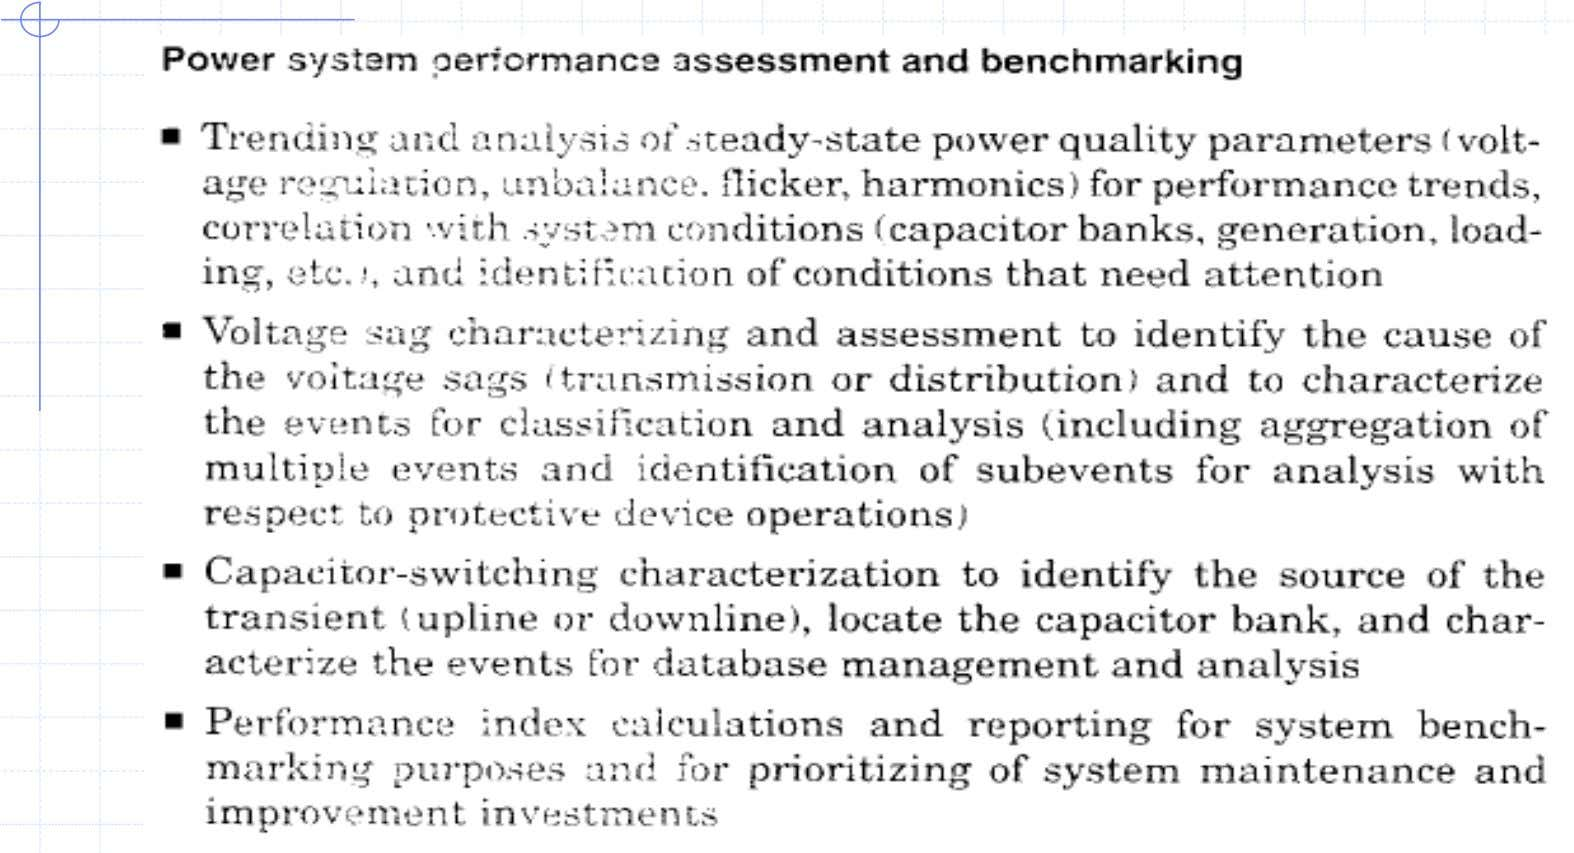 Power Sys. Perfm. Assessment and Benchmarking